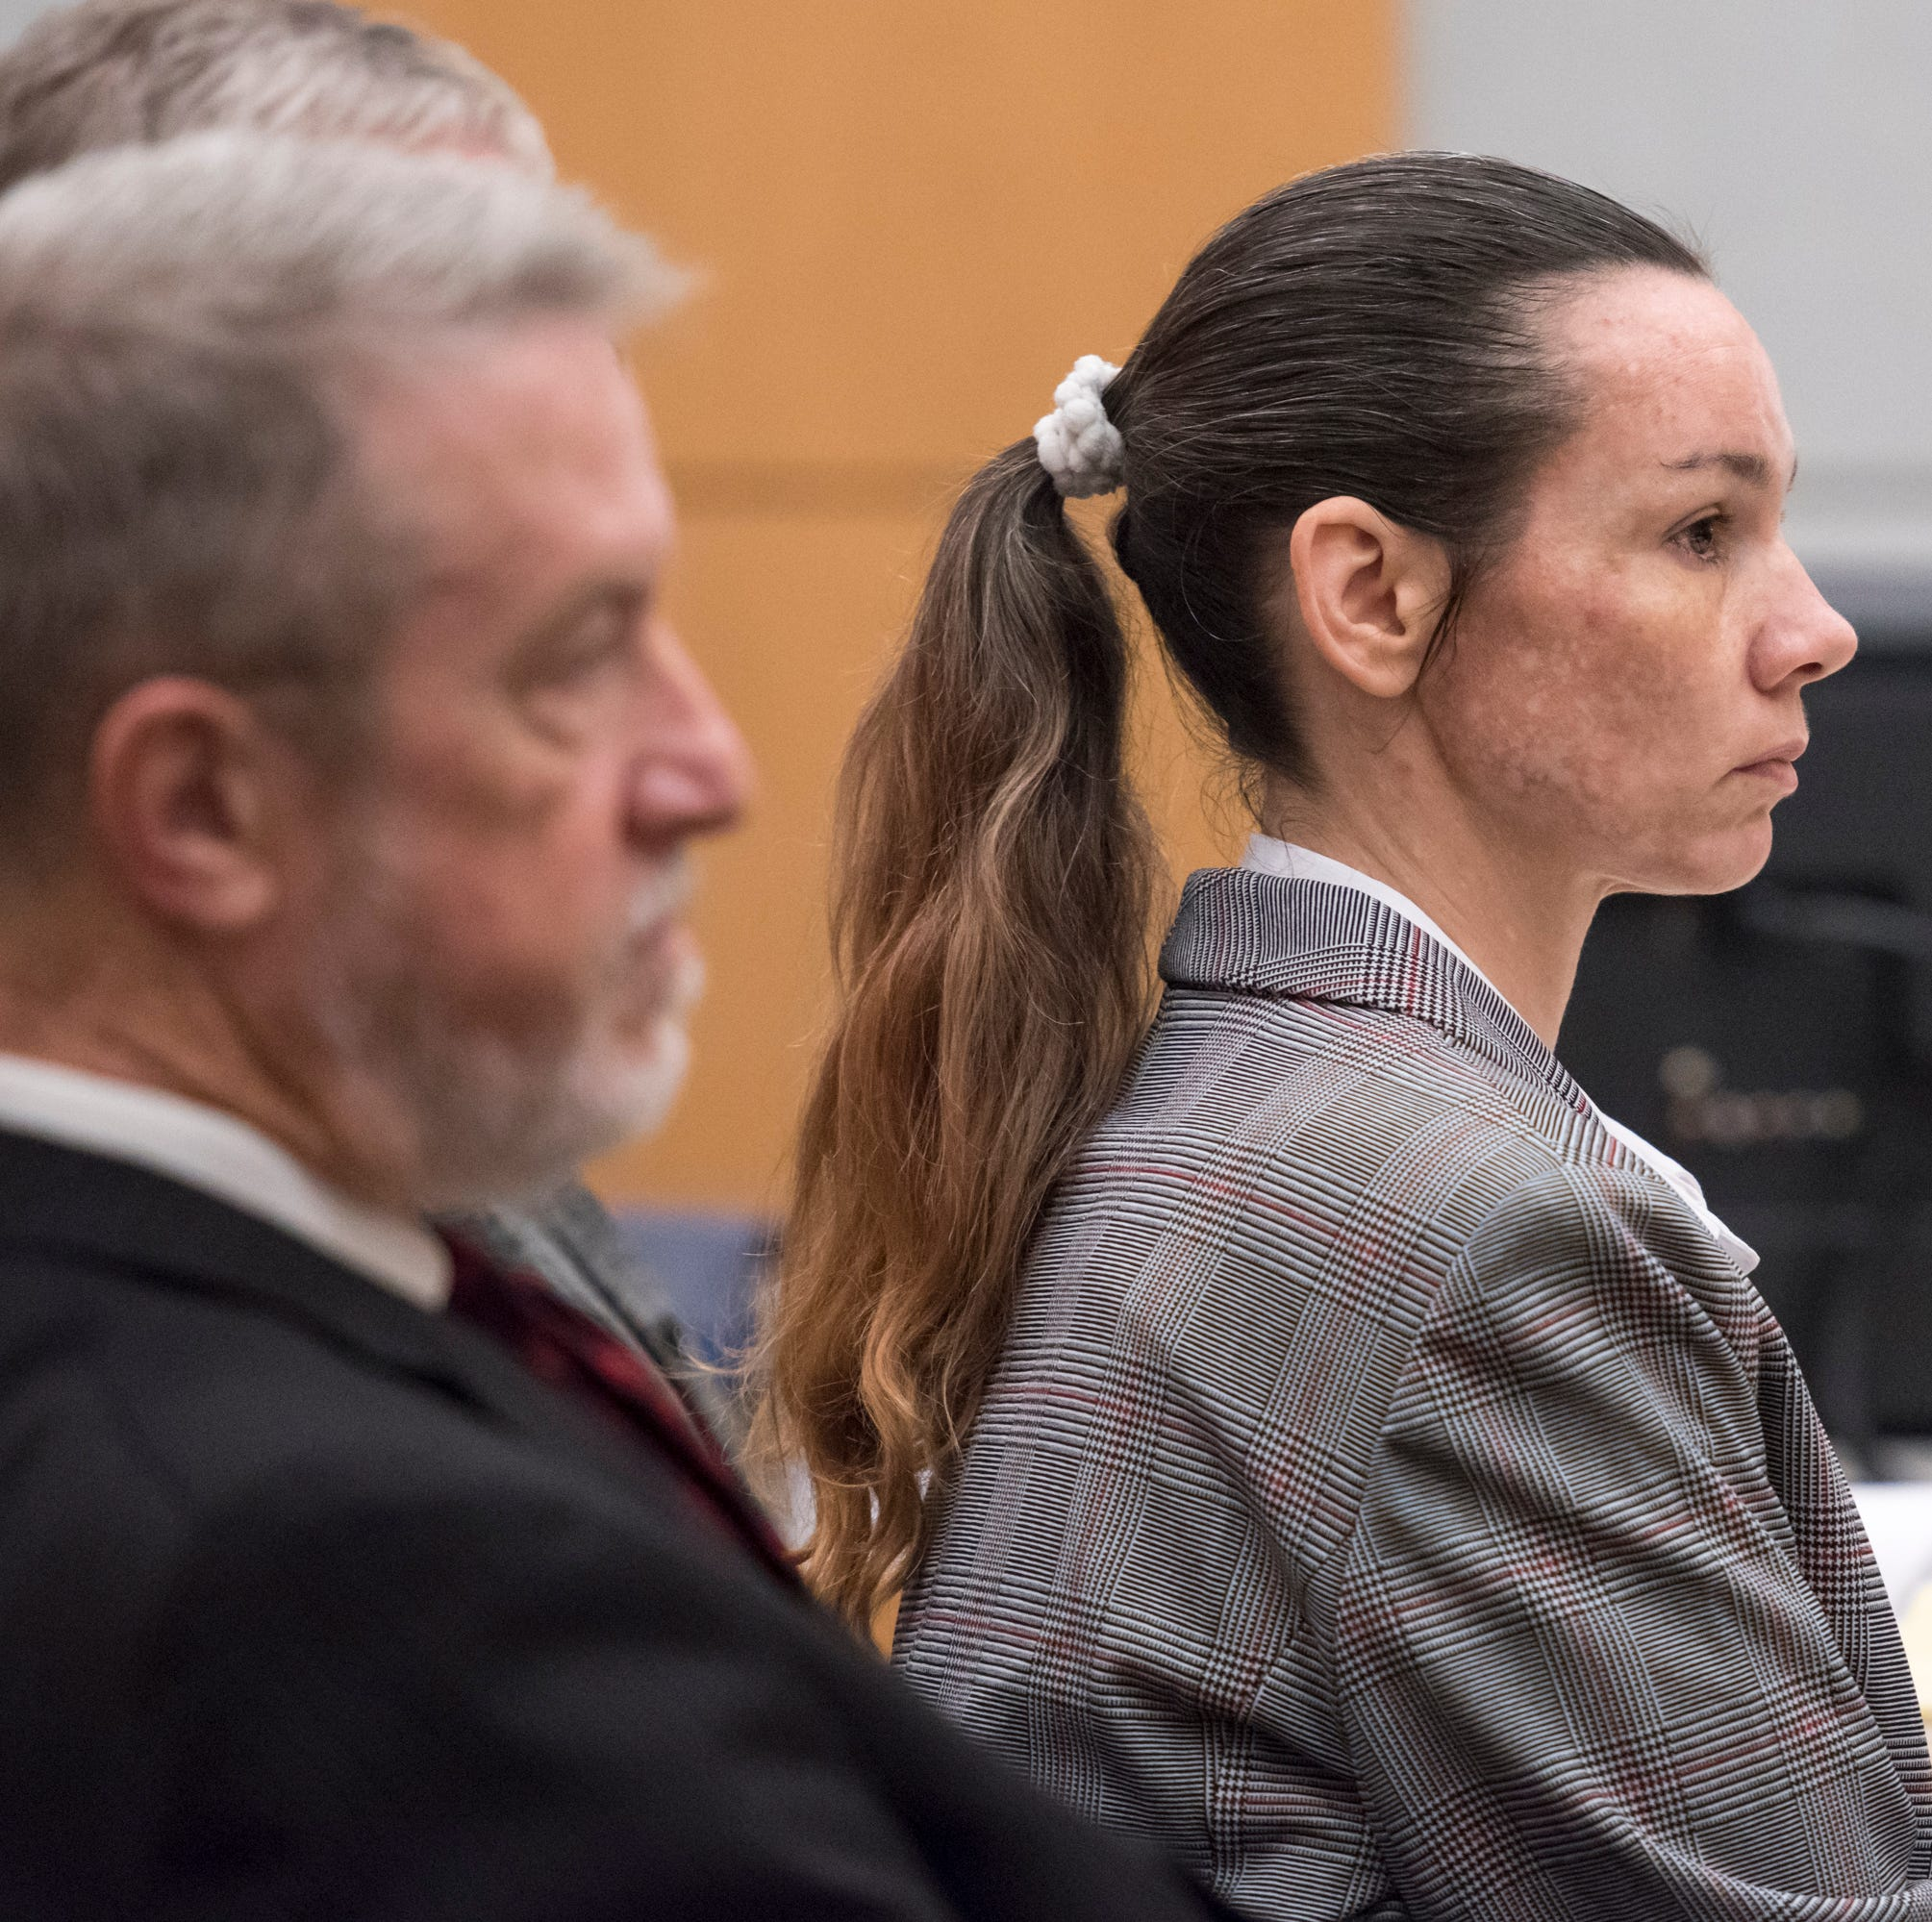 Mary Rice murder trial: Witness says Boyette talked about 'getting back at ex' before spree